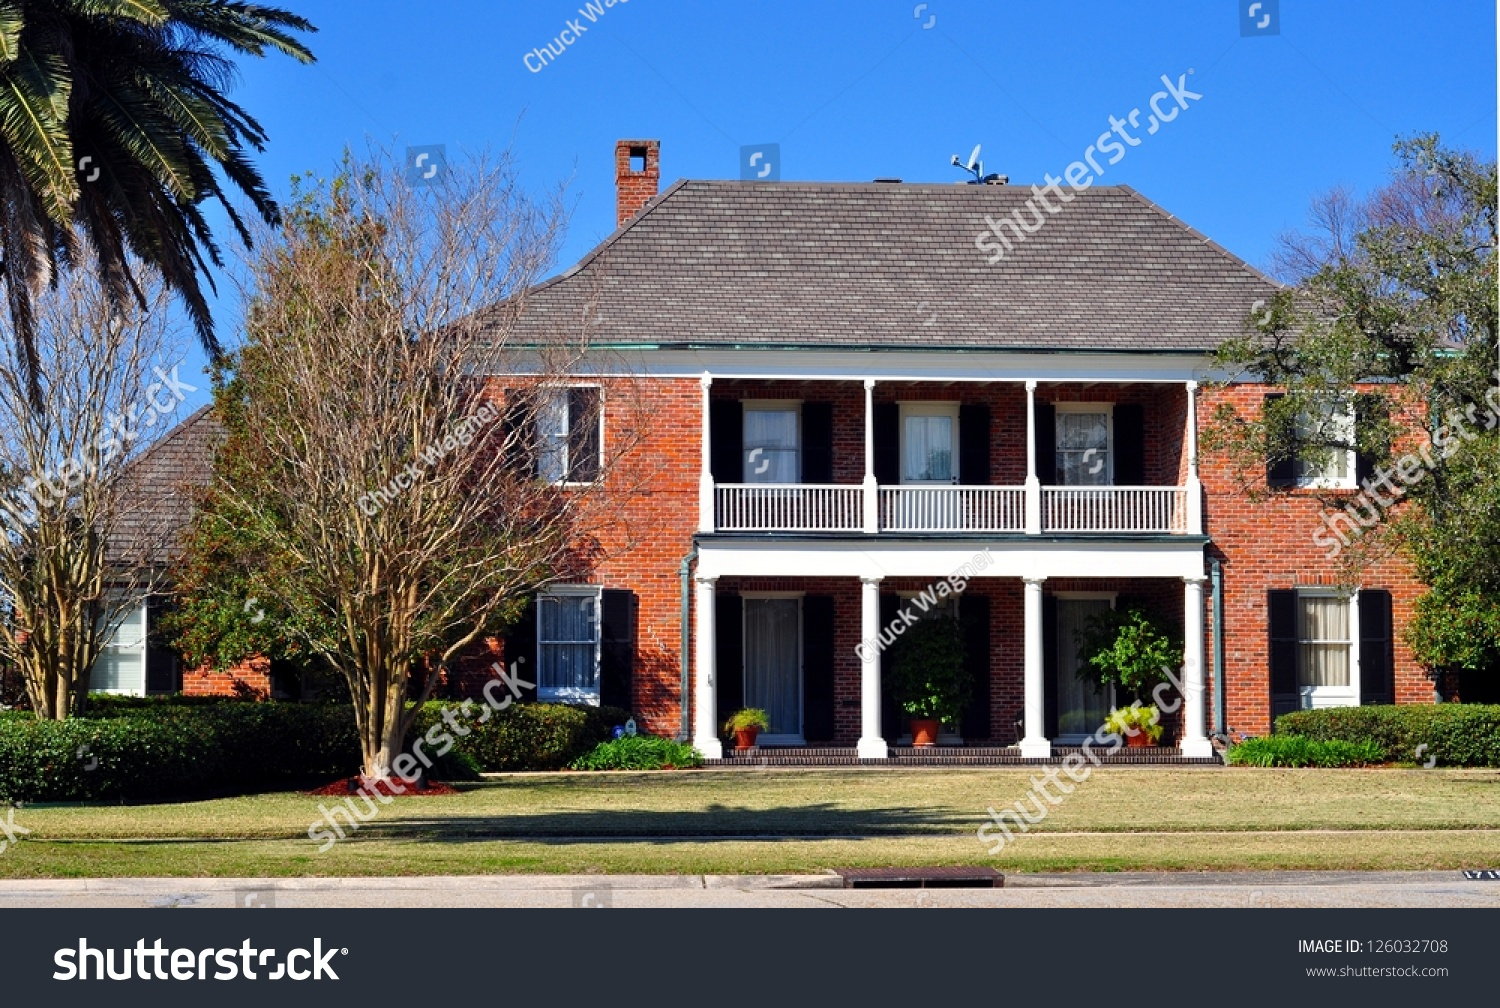 Beautiful two story brick house balcony stock photo for Two story house with balcony